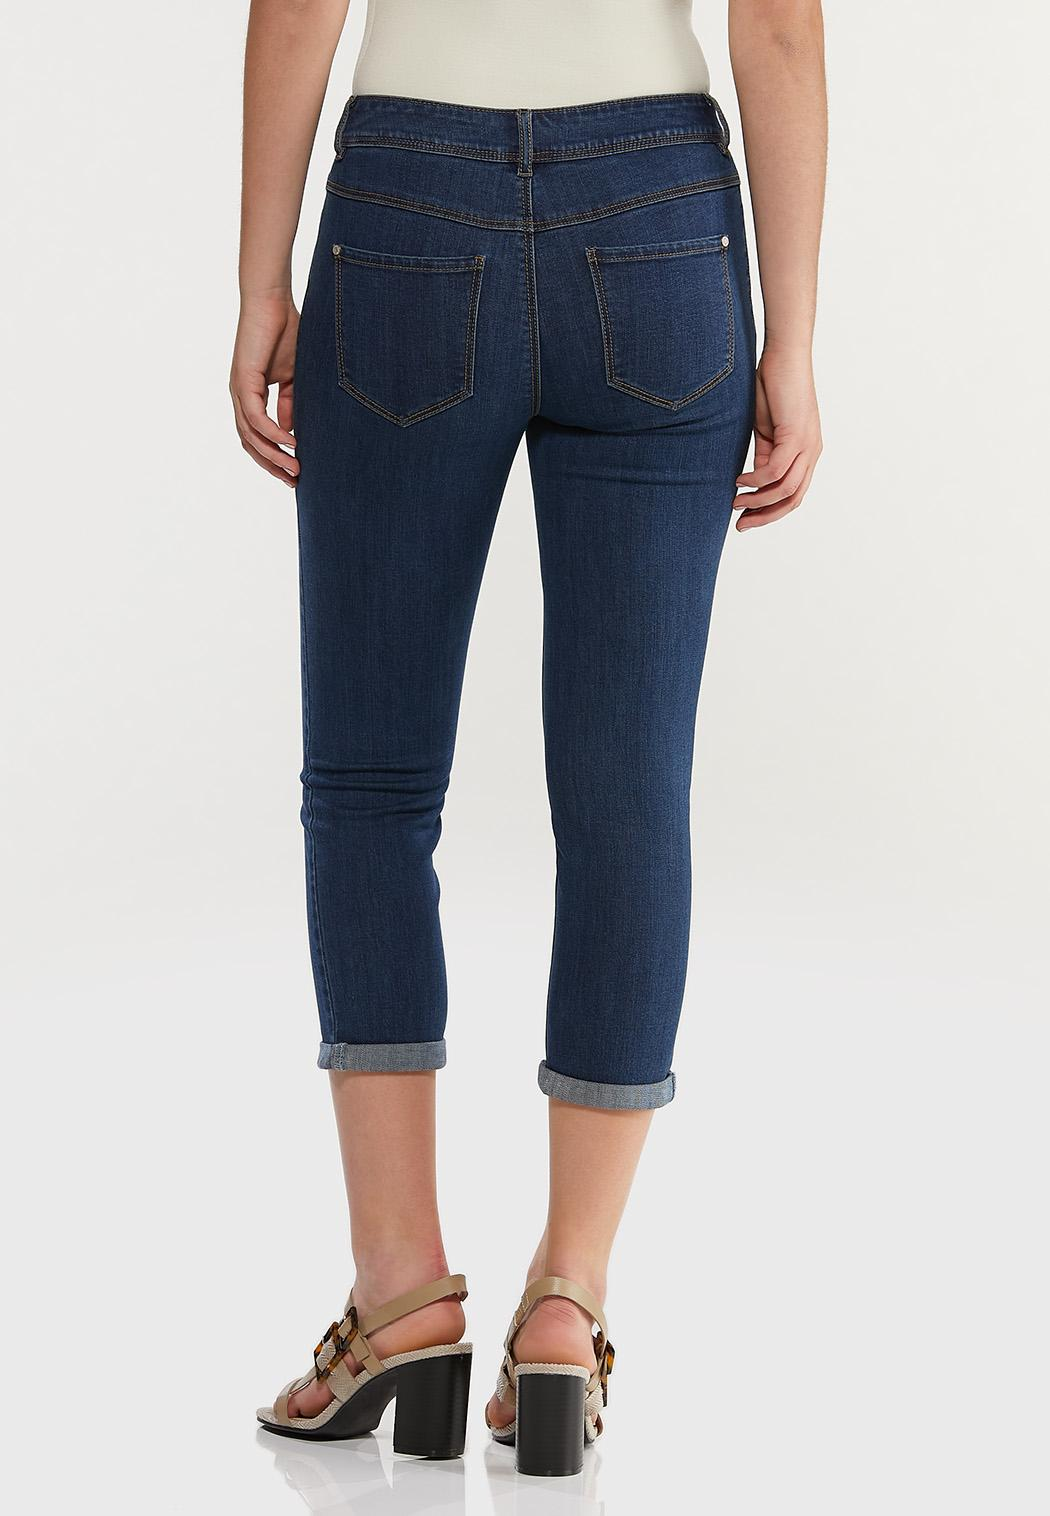 Cropped Skinny Jeans (Item #44475961)